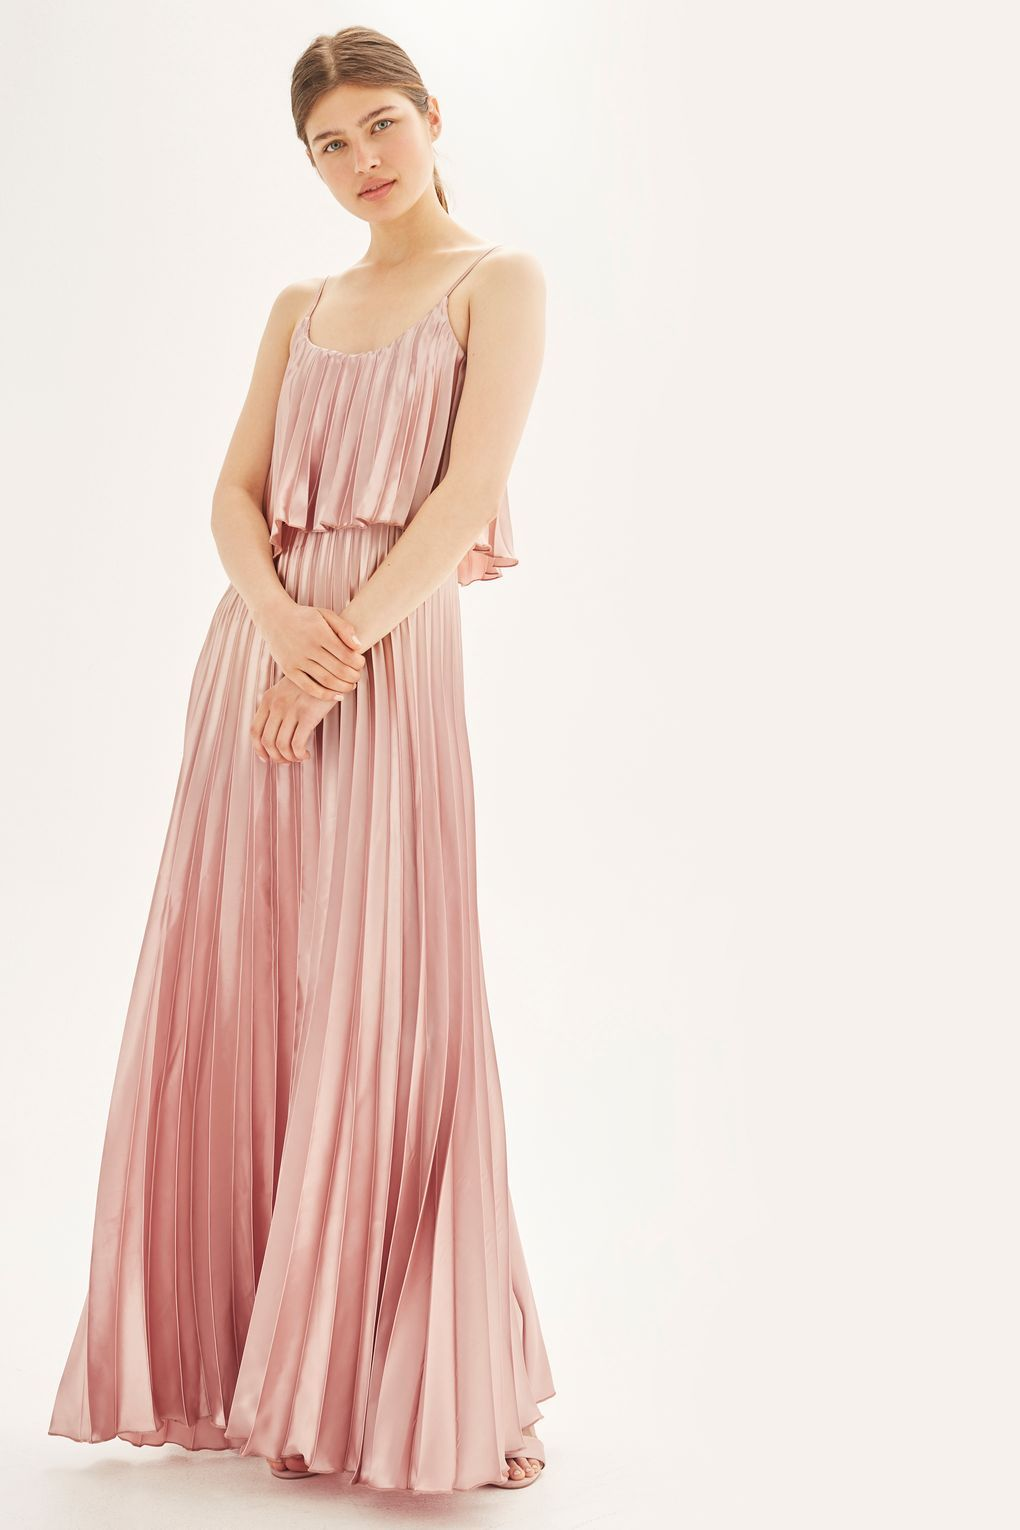 Maxi Dress By Oh My Love Maxi Dresses Topshop And Clothing